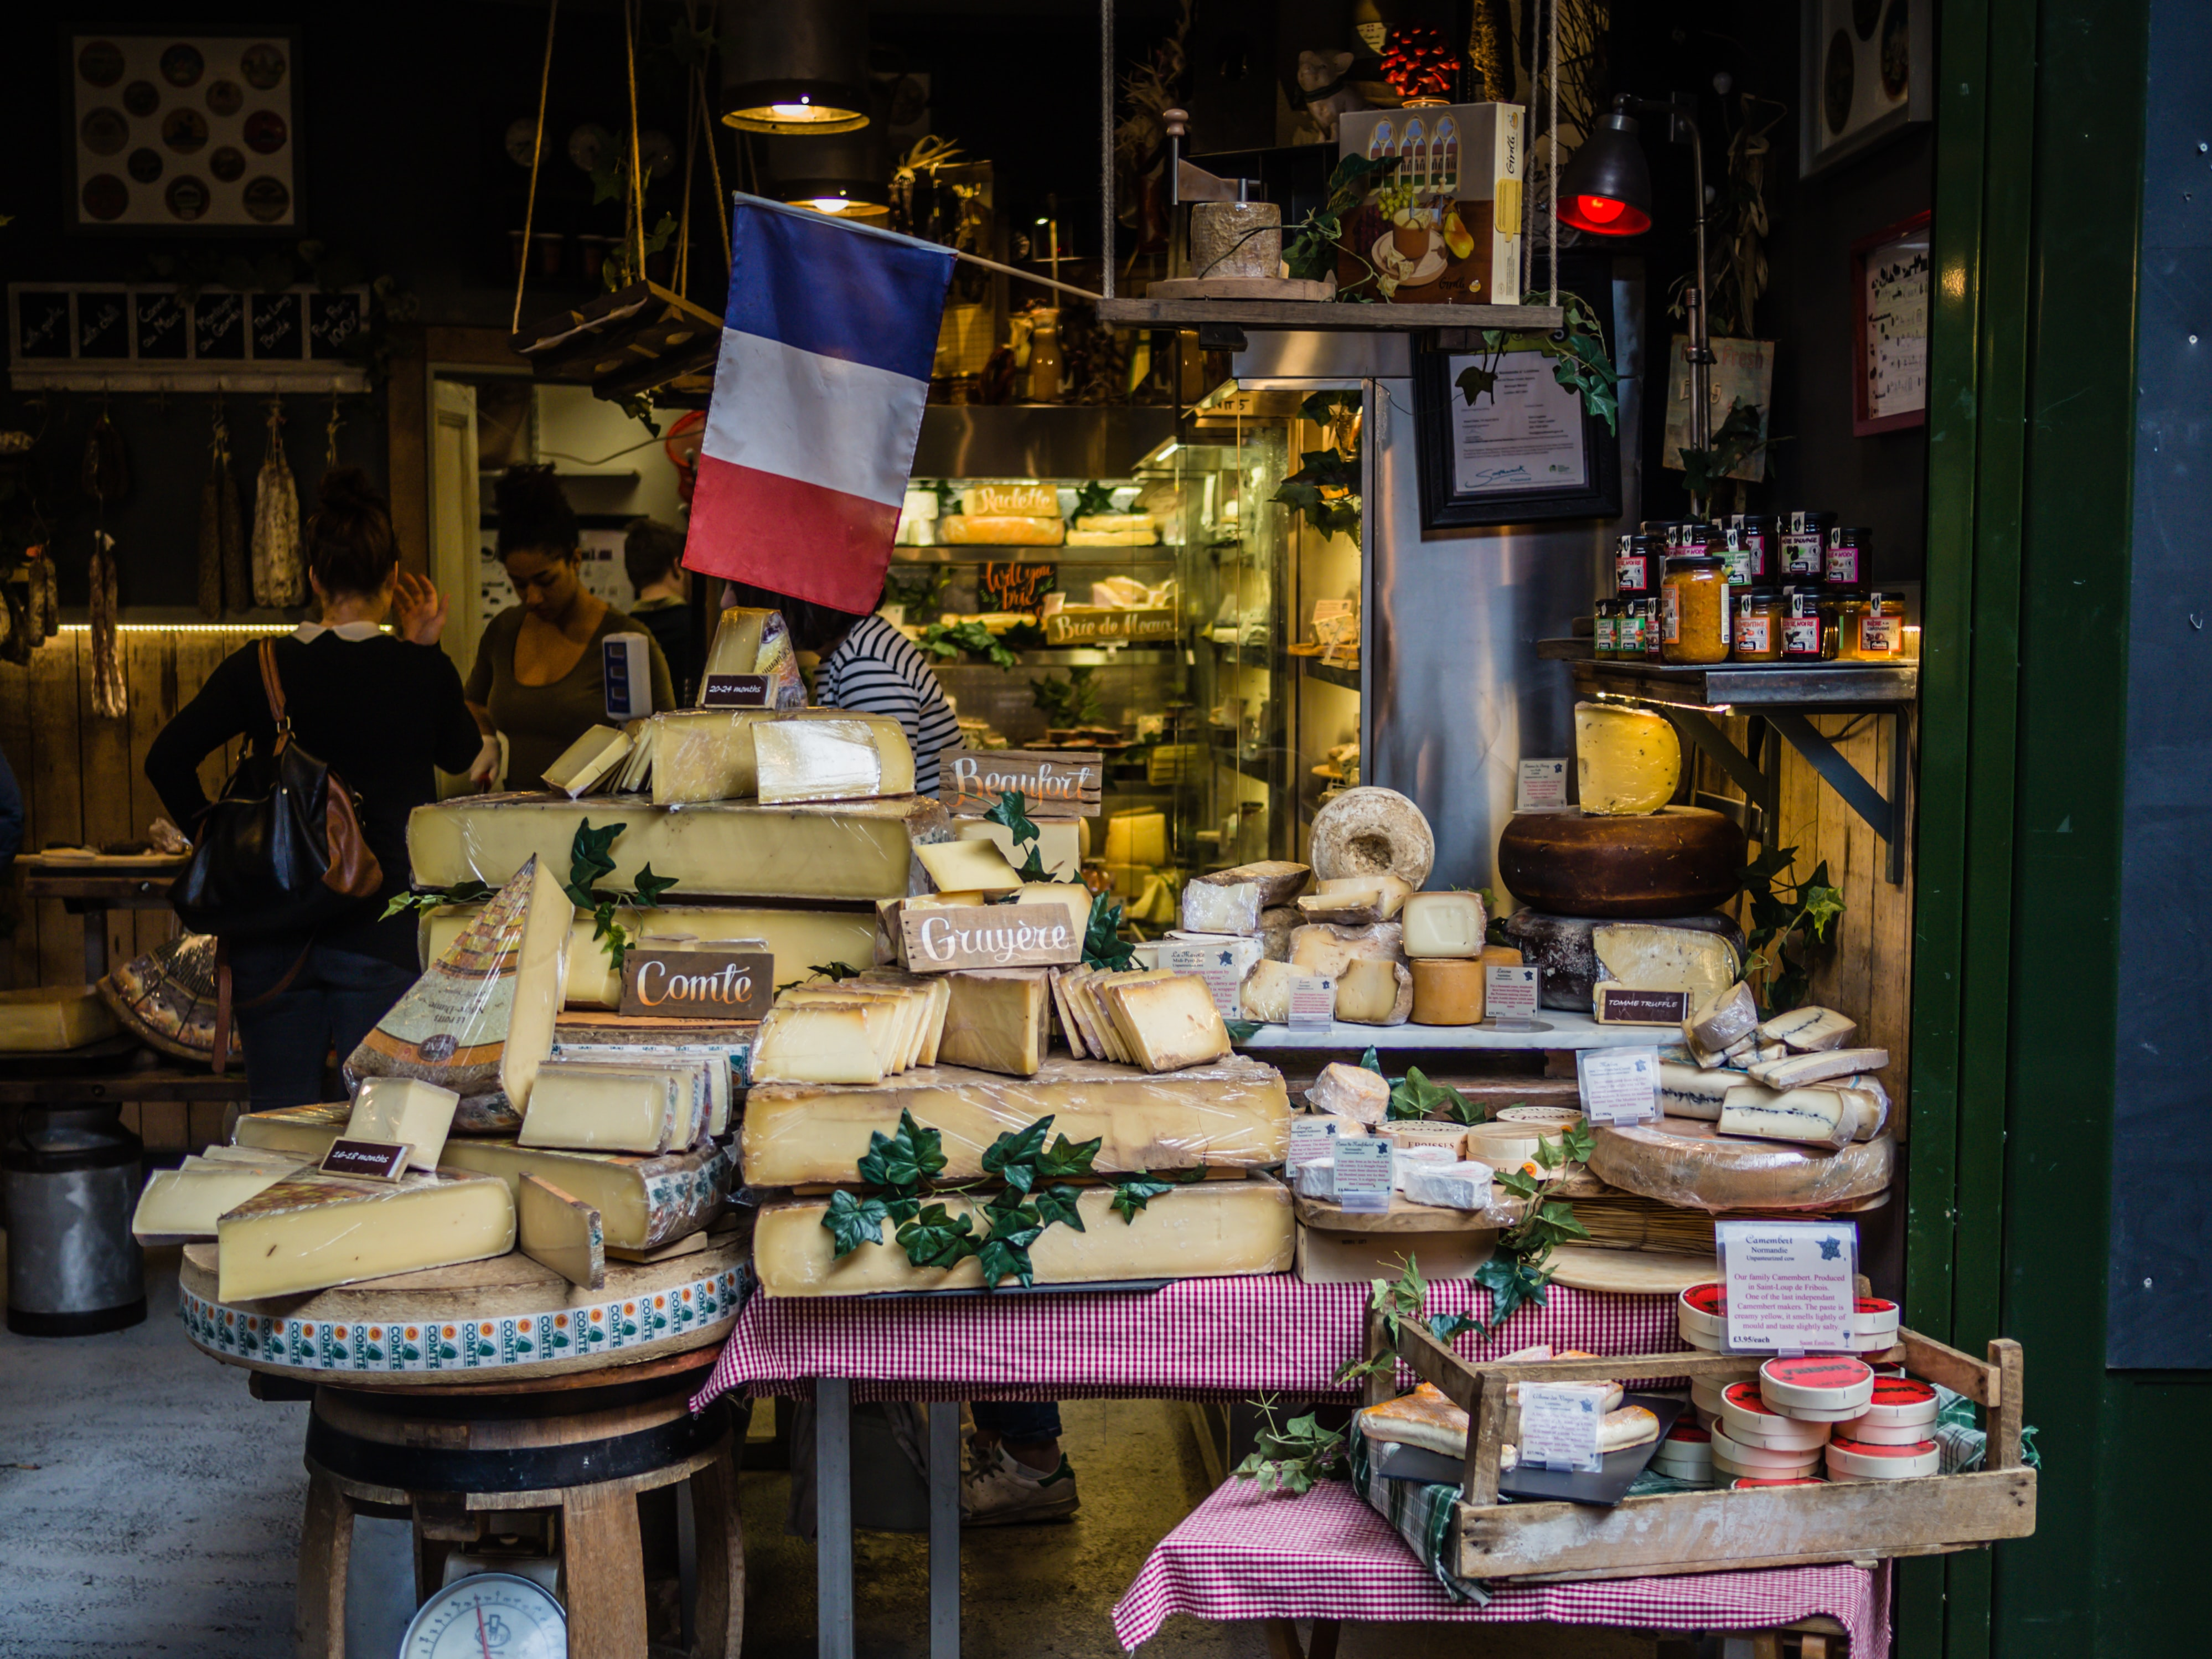 A stall with various types of French cheese